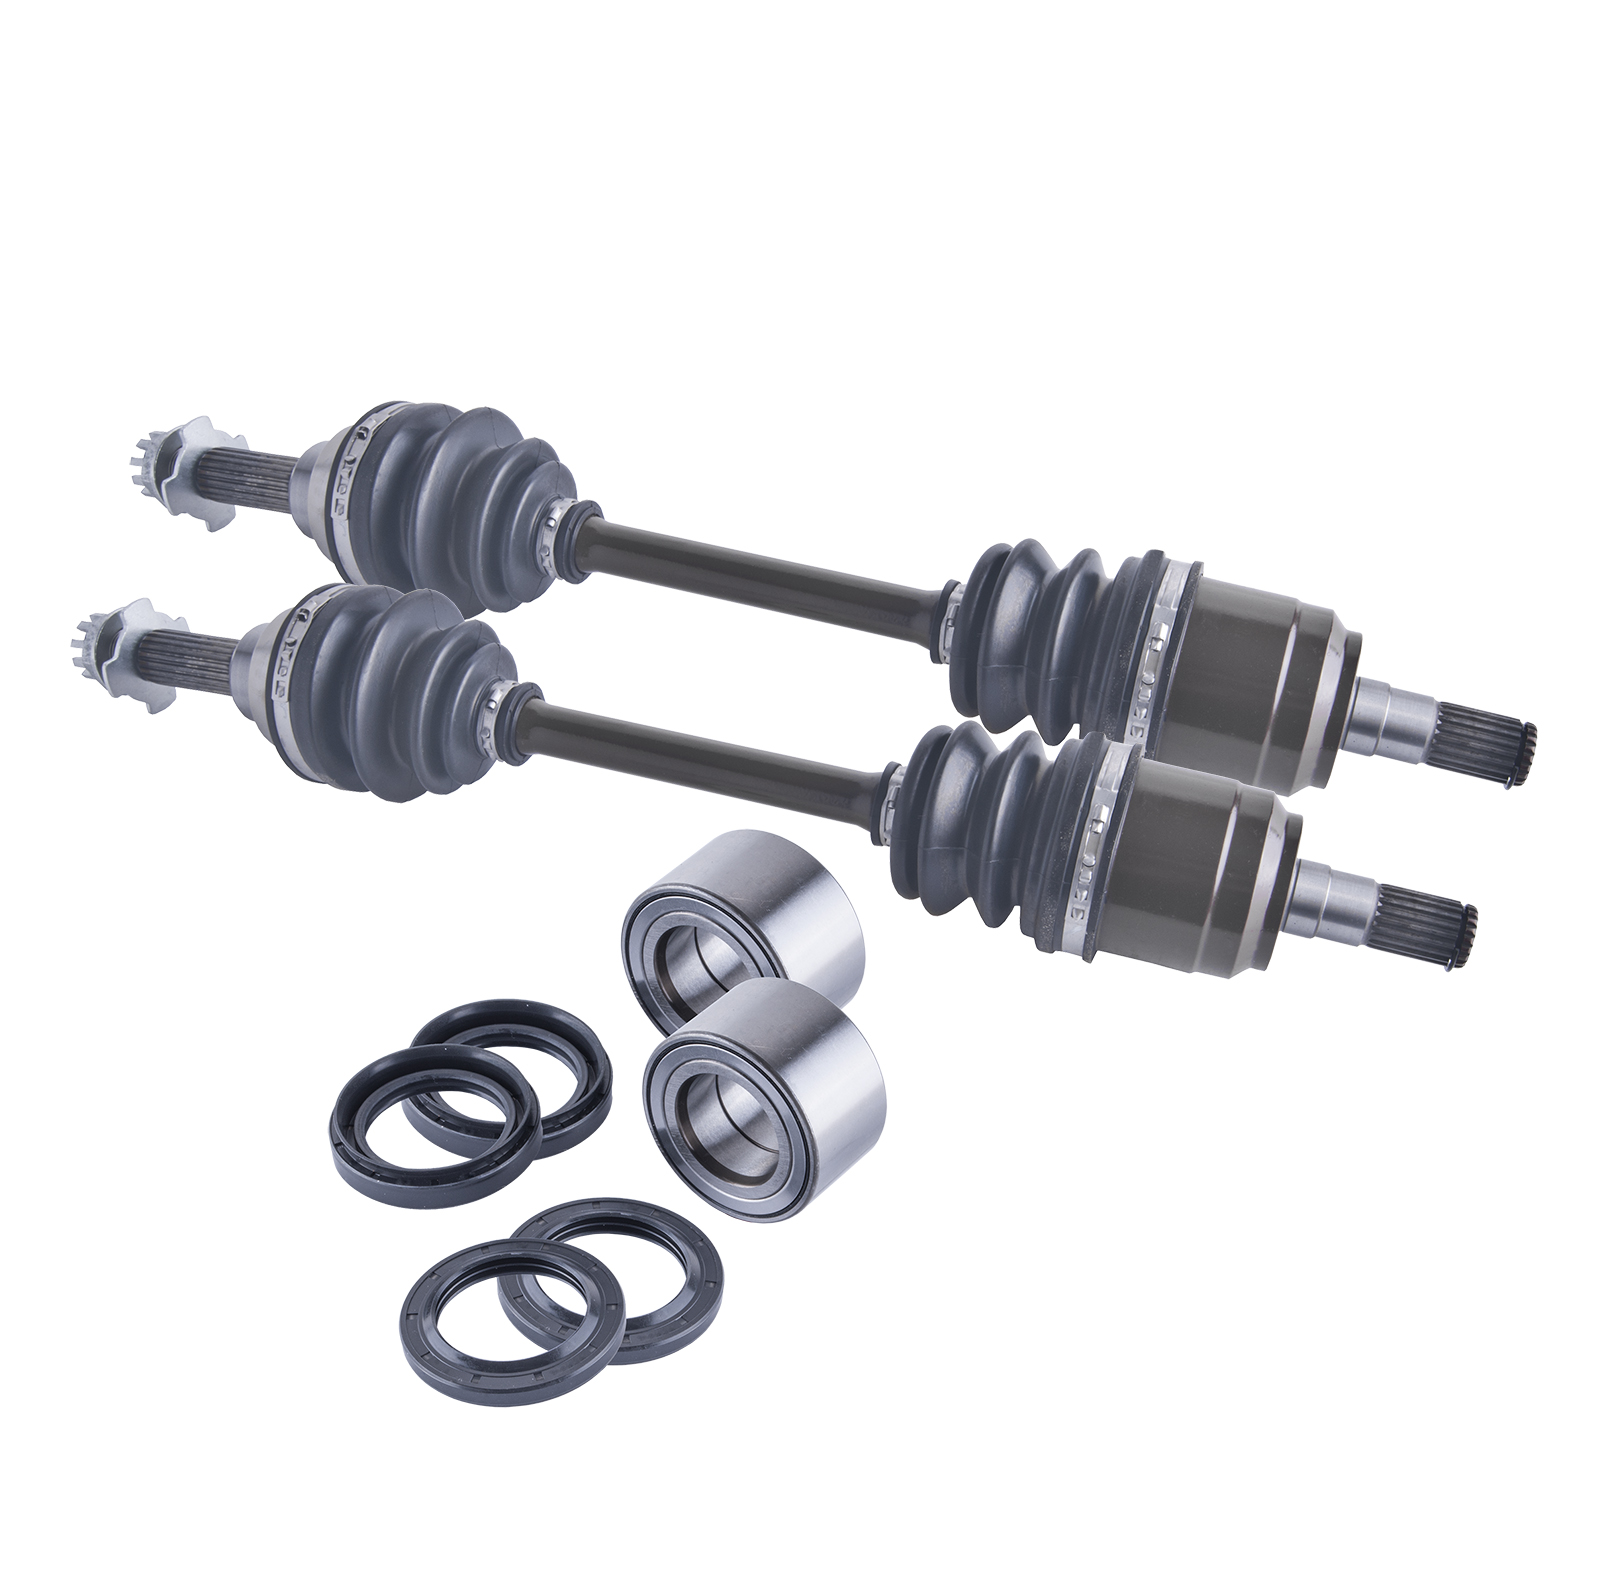 Suzuki King Quad 450 /700 front cv axles, wheel bearings & seals set 2006 - 2009